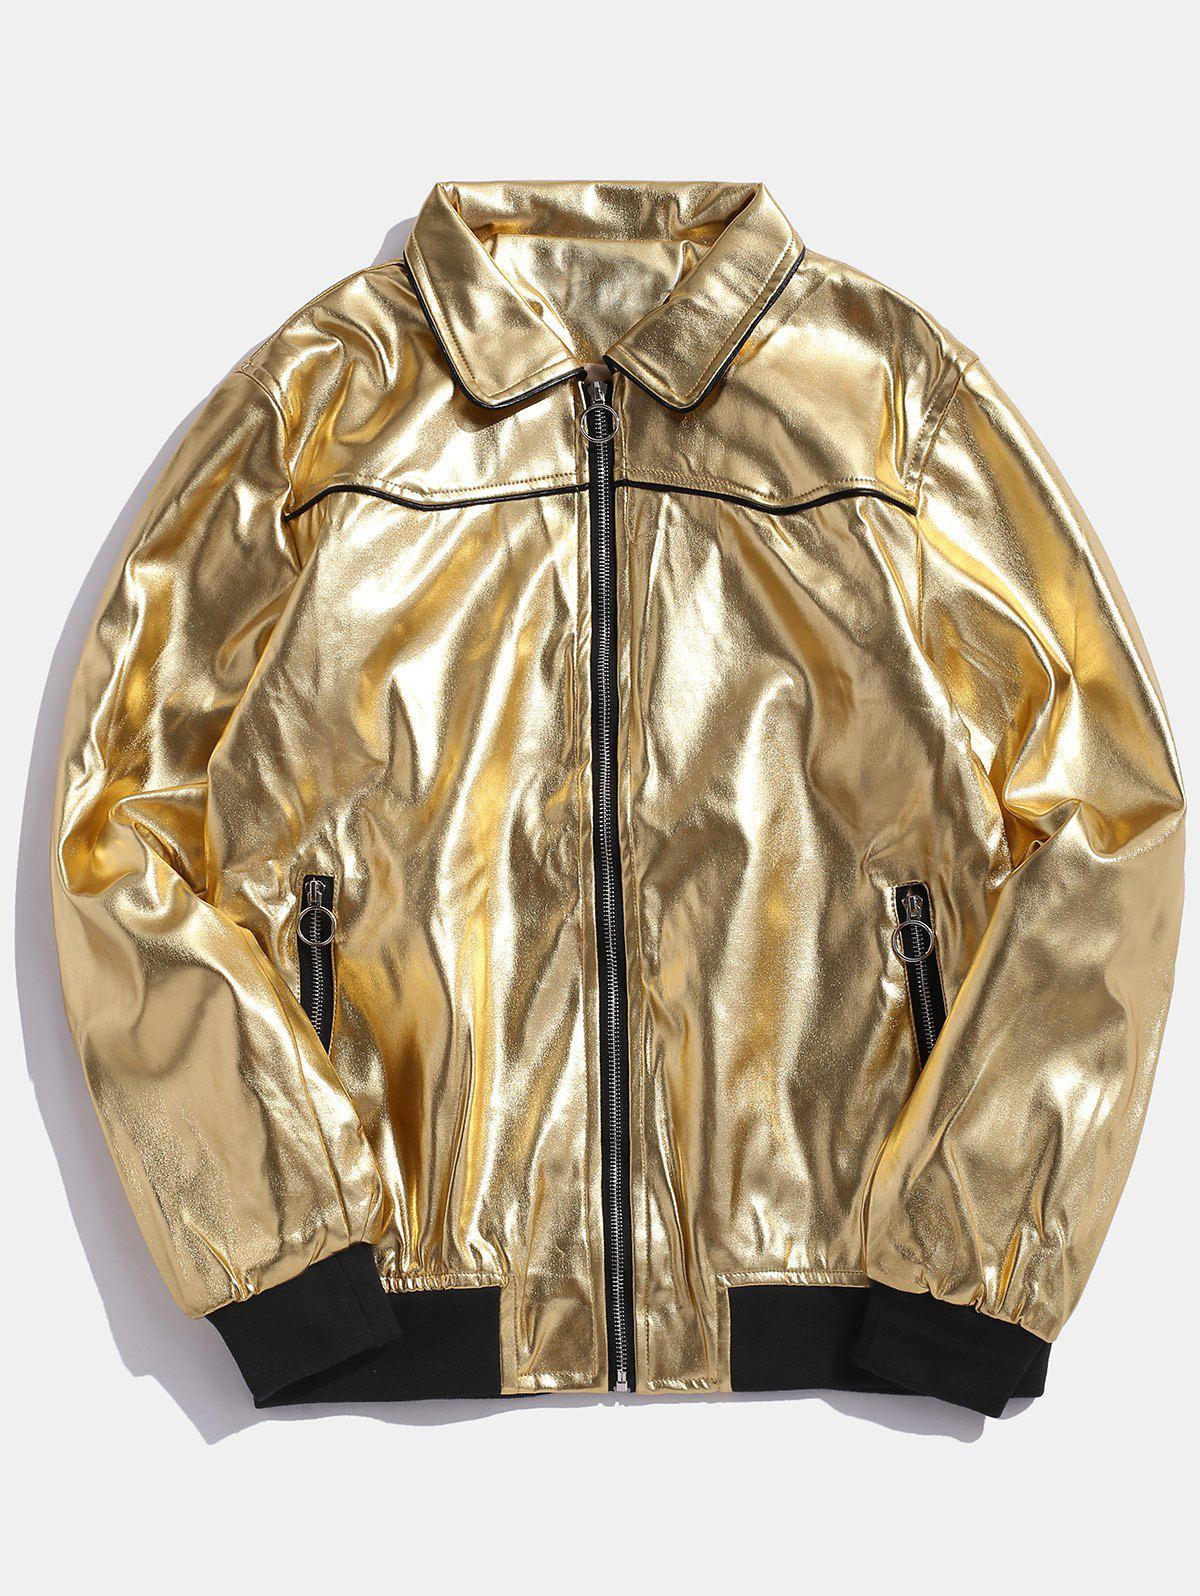 O-ring Pull Vinyl Leather Zip Up Jacket - GOLD 2XL